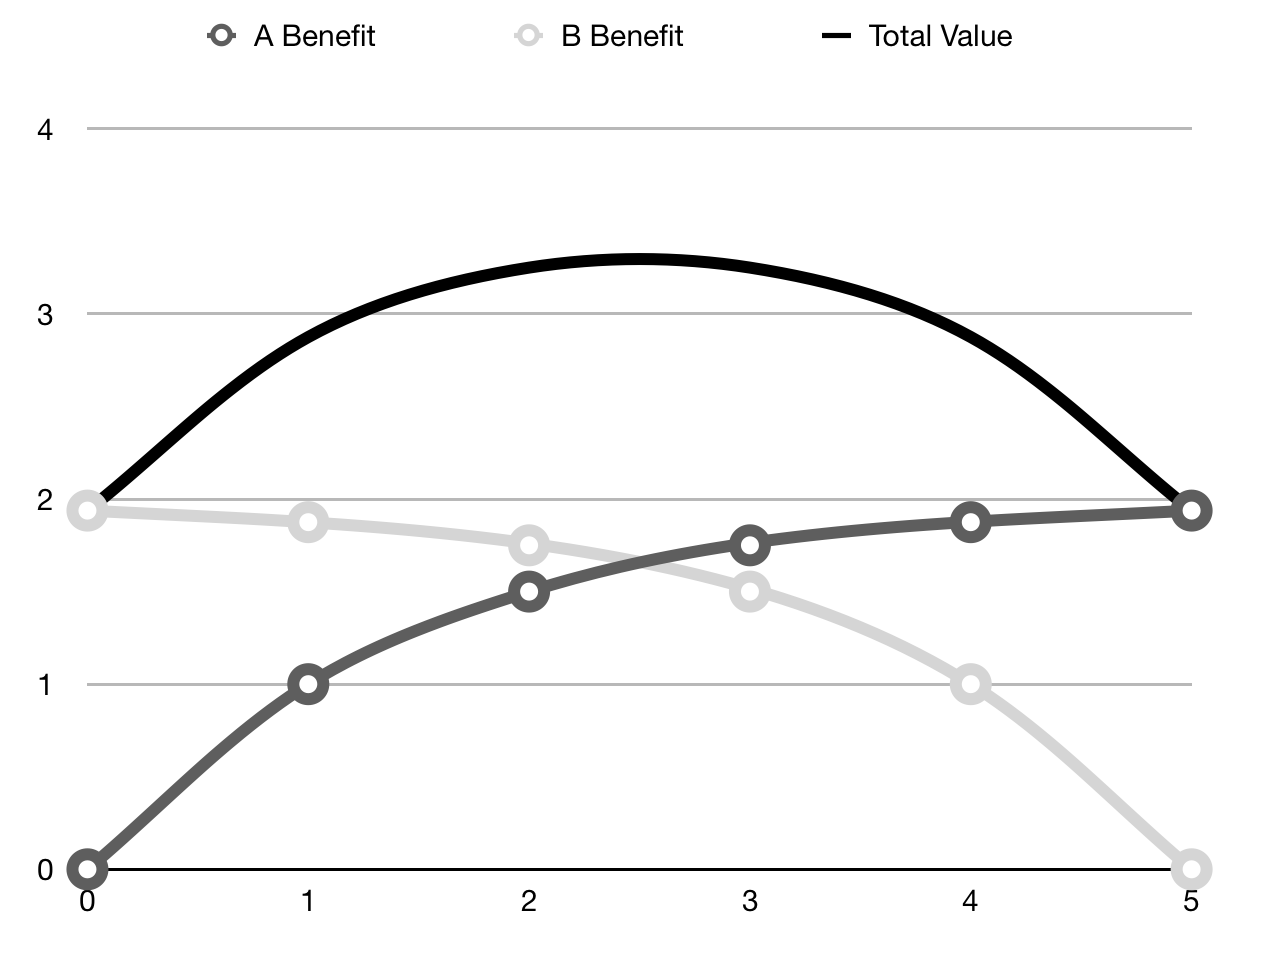 Sharing Resources.  5 units are available, and the X axis shows A's consumption of the resource.  B gets whatever remains.  Total benefit is maximised somewhere in the middle